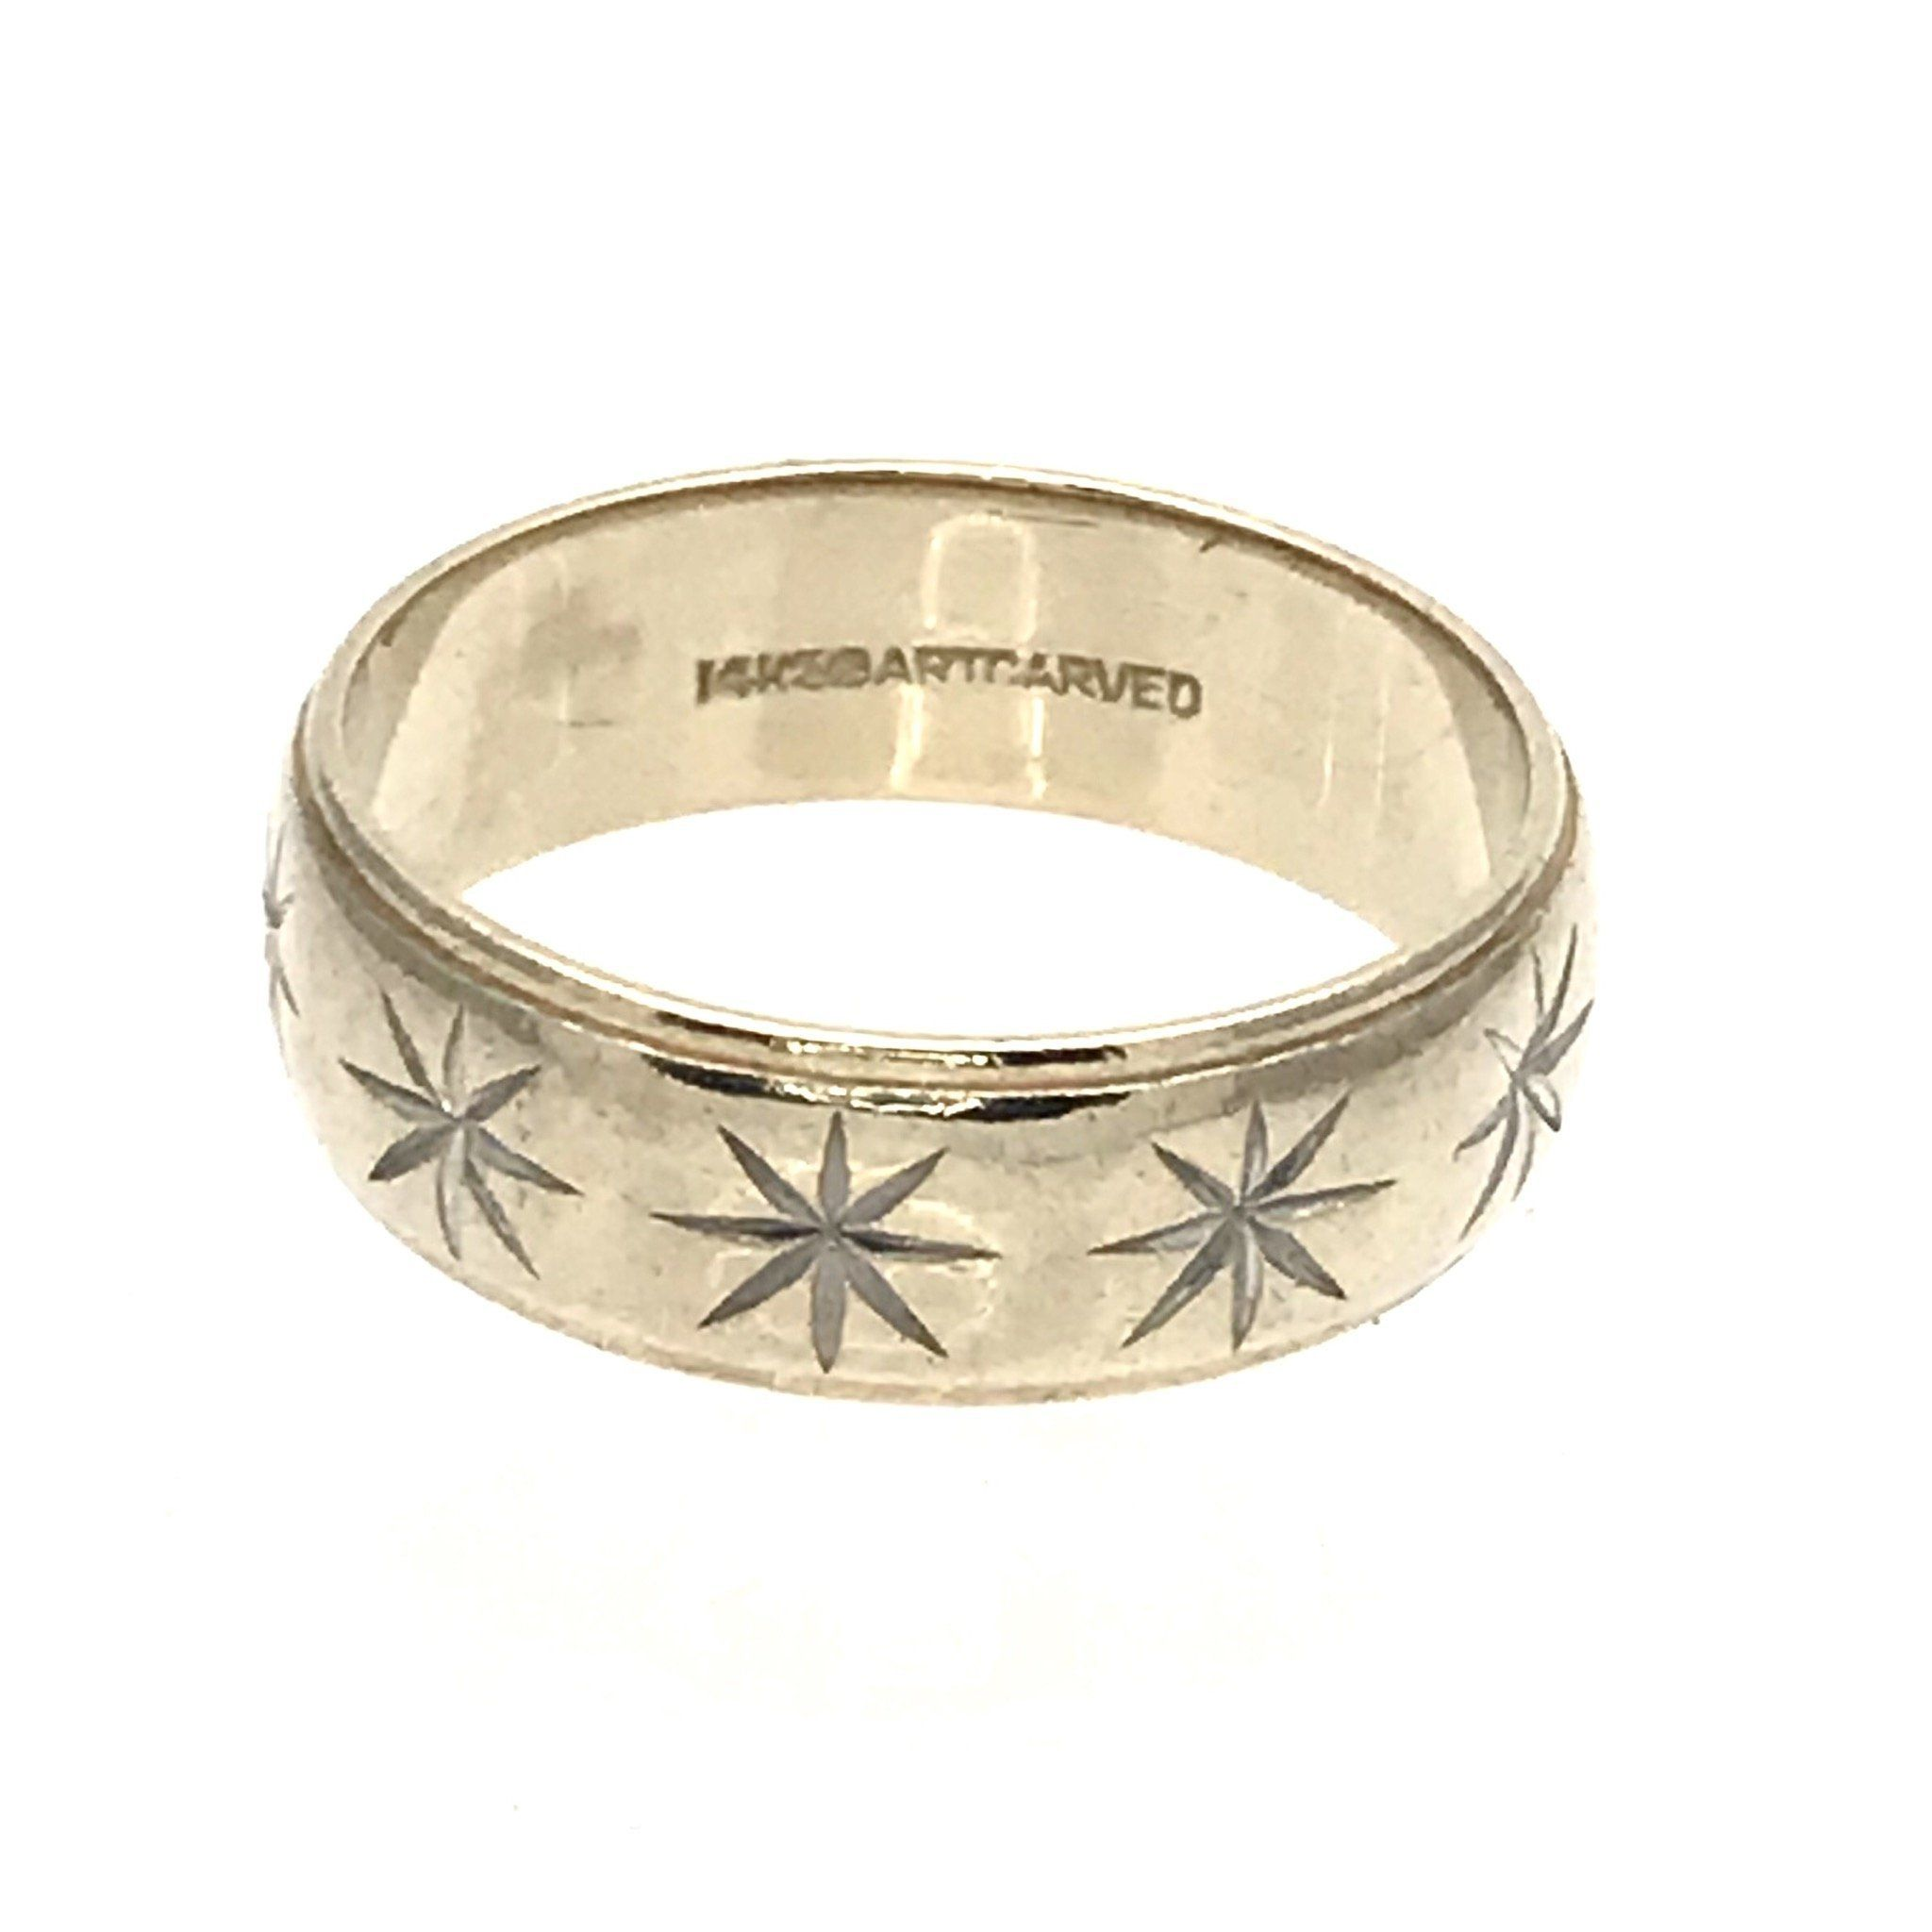 Mens 14k Gold Wedding Band Ring With Carved Starbursts 14k Gold Wedding Band Wedding Ring Bands Mens Wedding Bands